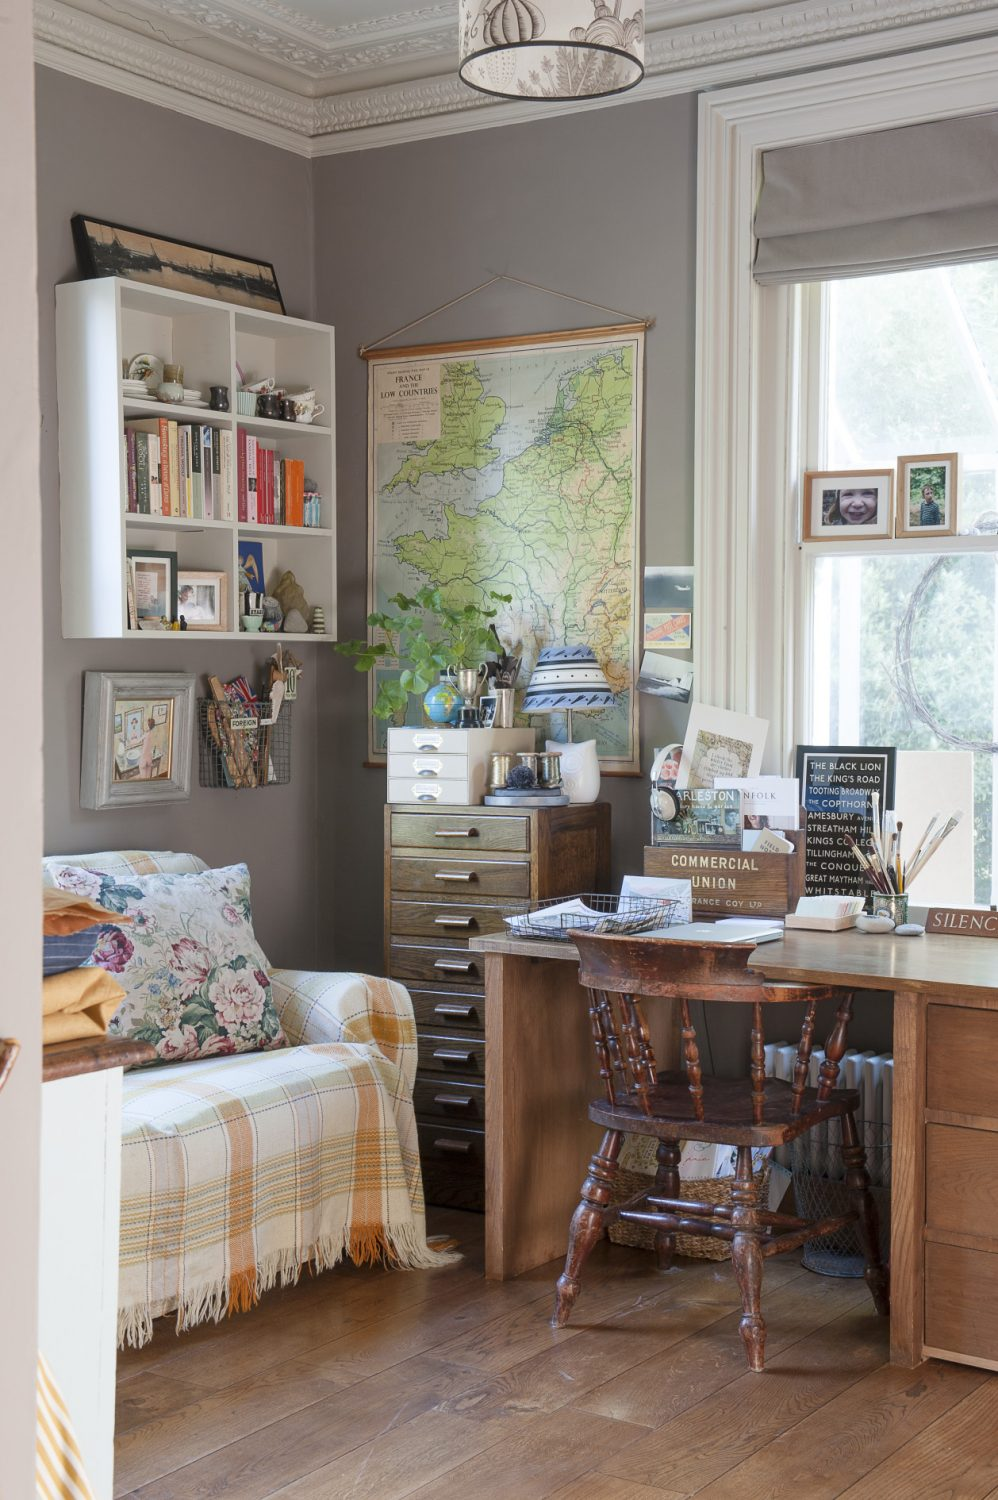 Next to a long sofa, covered with a vintage wool blanket, hangs a waxed schoolroom map of France